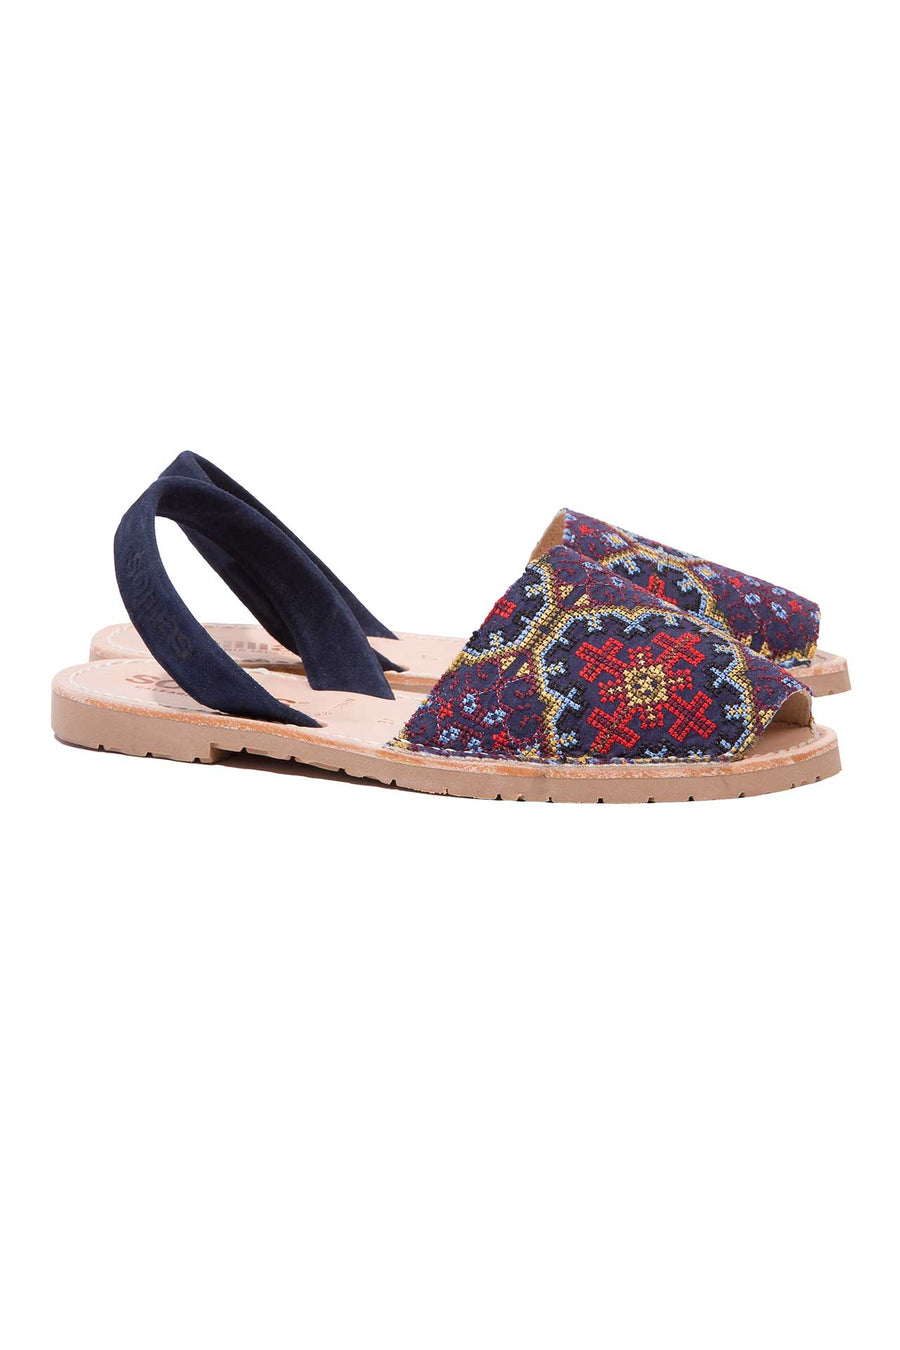 Navy blue embroidered Menorcan Sandals for Women, made in Spain by Solillas Australia, side view